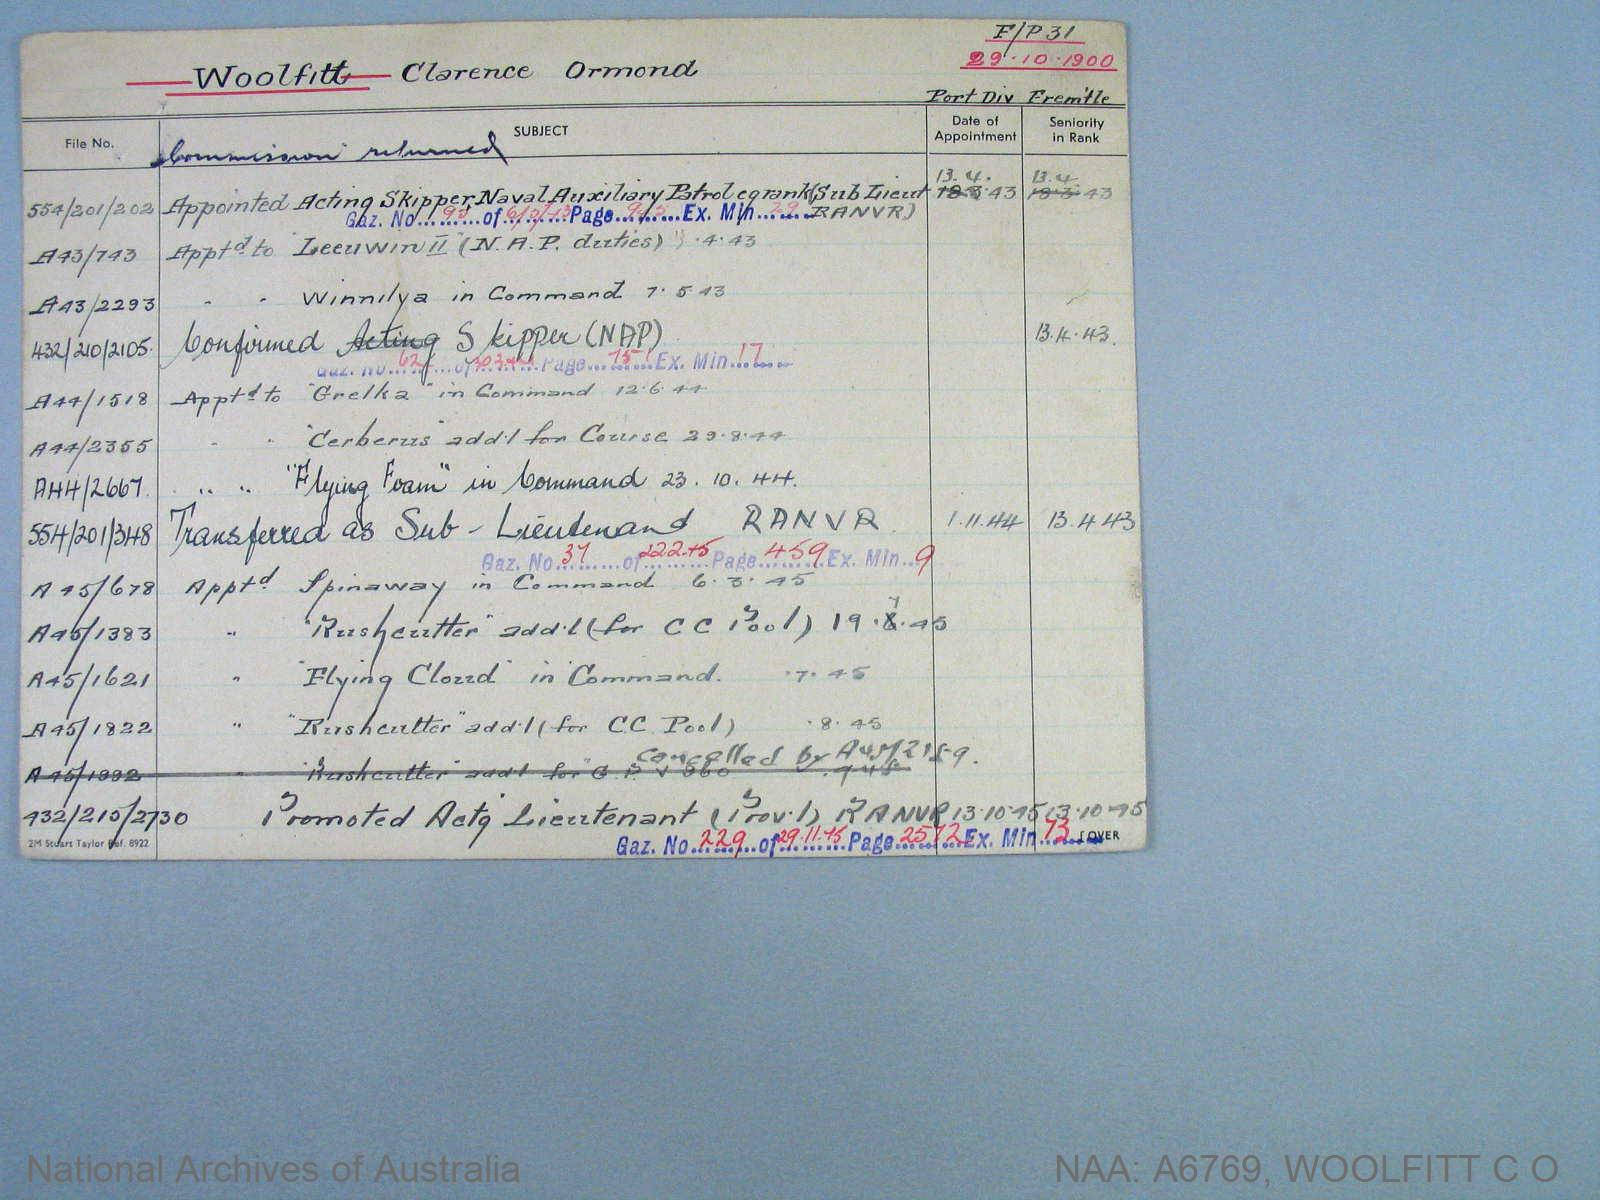 WOOLFITT CLARENCE ORMOND : Date of birth - 29 Oct 1900 : Place of birth - MOUNT MARGARET : Place of enlistment - FREMANTLE : Next of Kin - STELLA